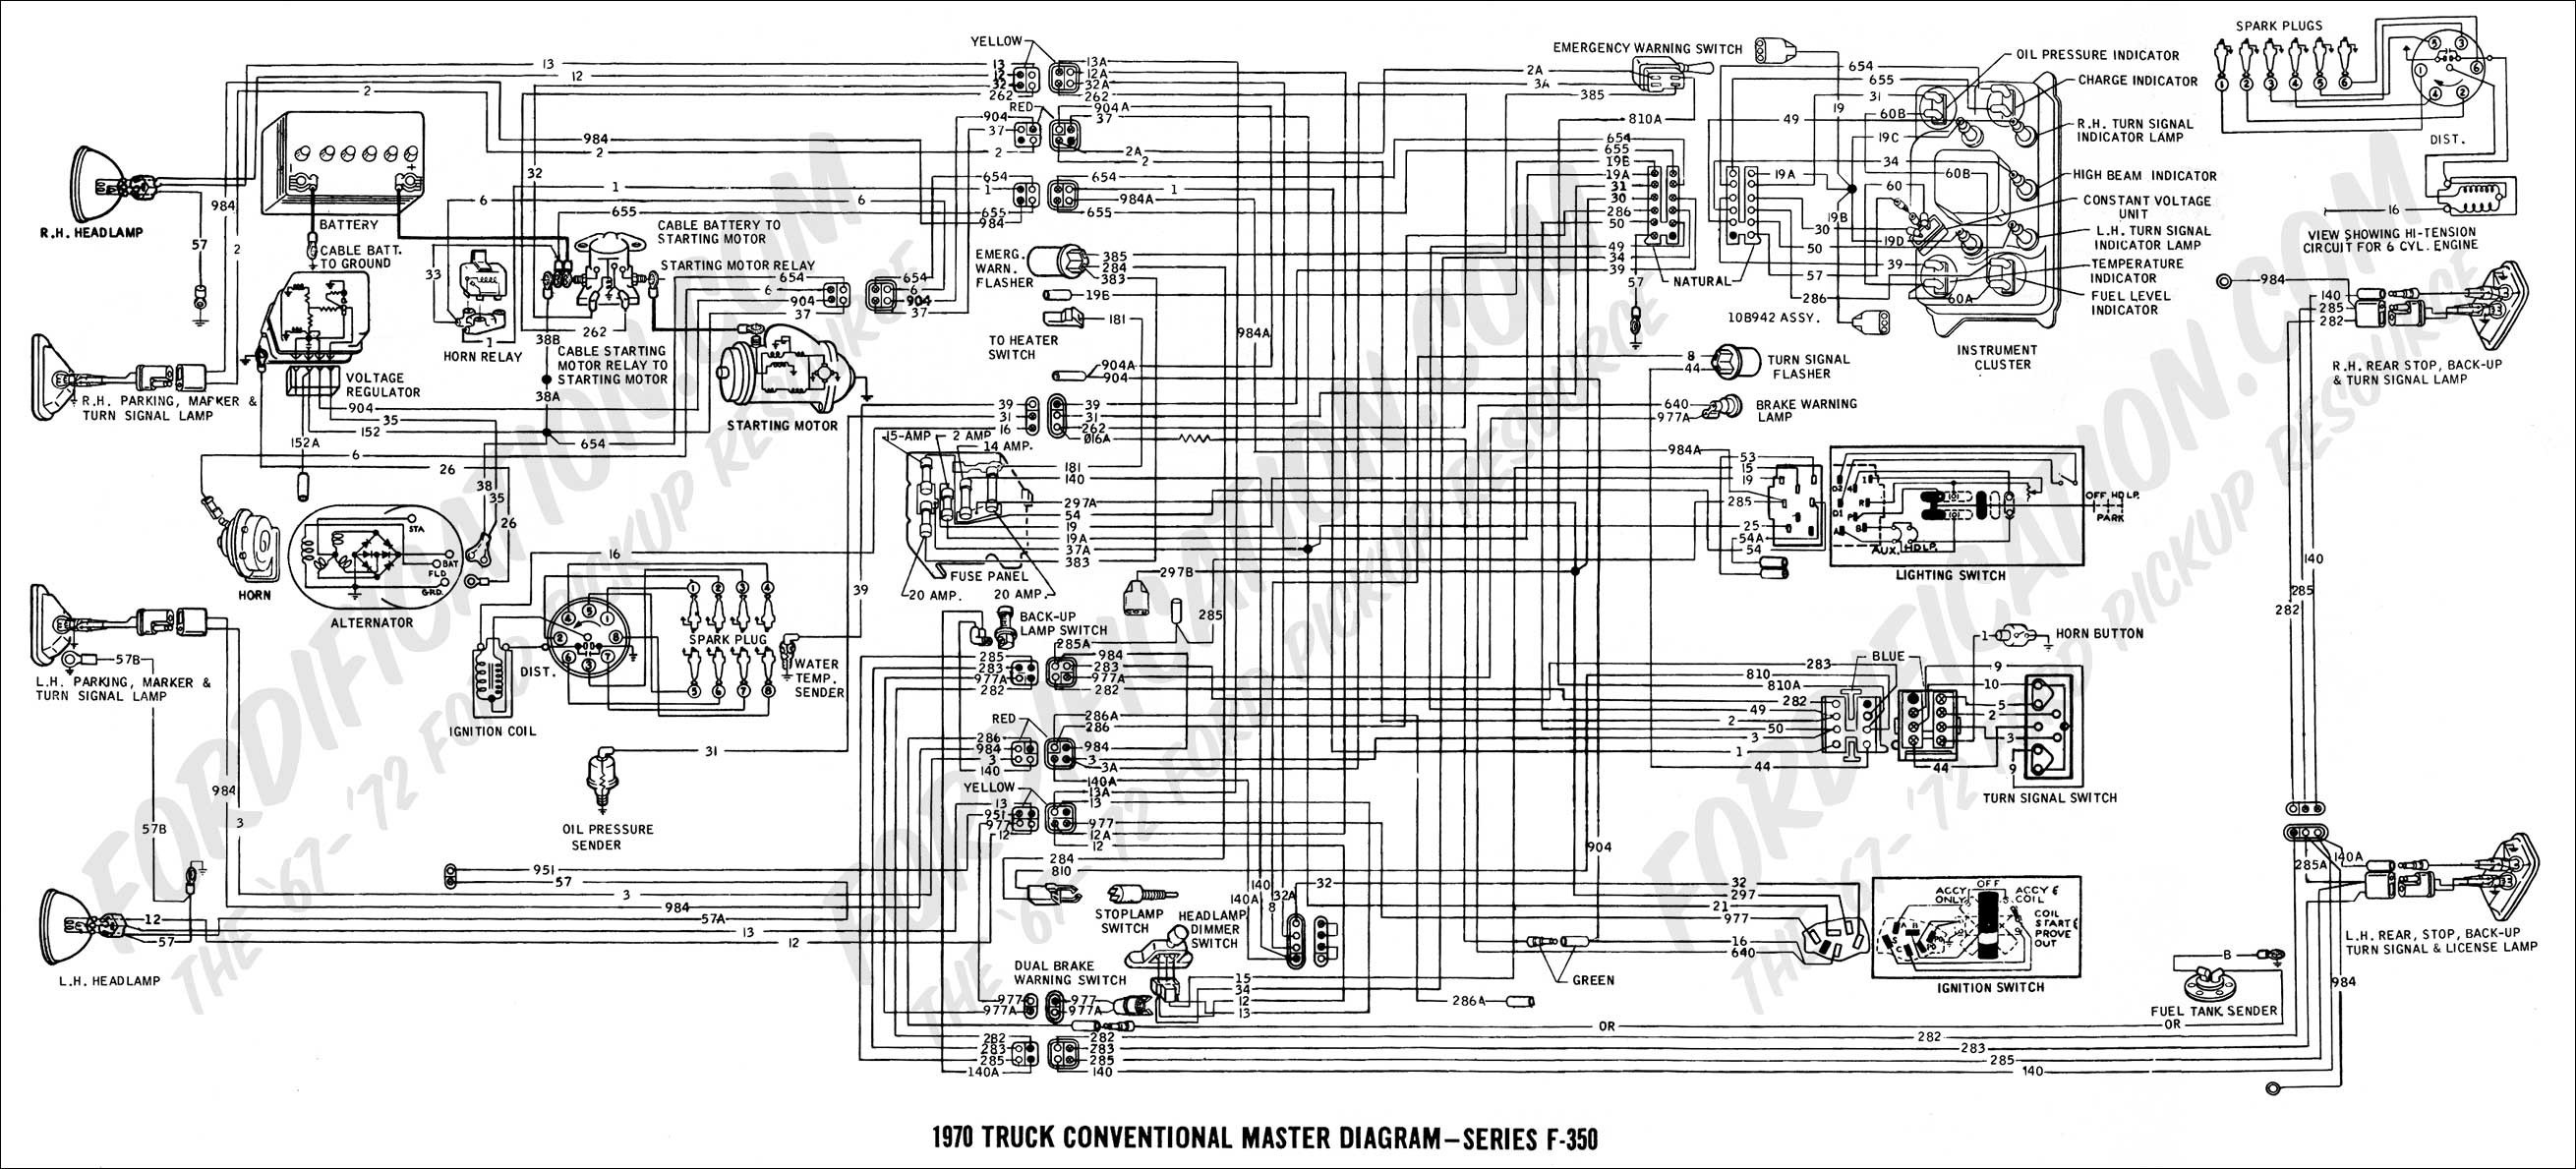 2001 ford Ranger Engine Diagram ford Ranger Parts Diagram Of 2001 ford Ranger Engine Diagram